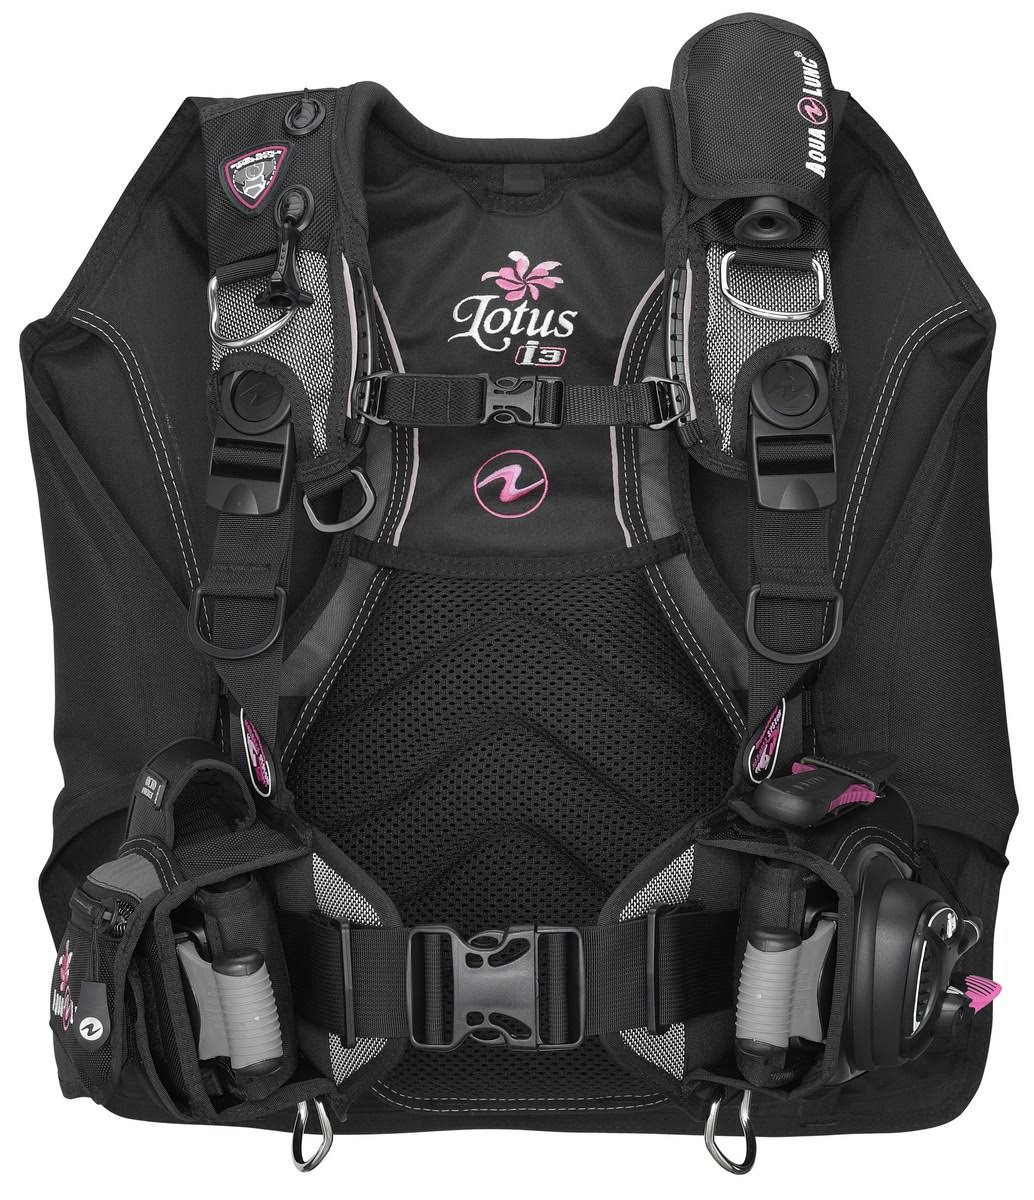 Aqua Lung Lotus i3 BC BCD Womens Scuba Diving Buoyancy Compensator